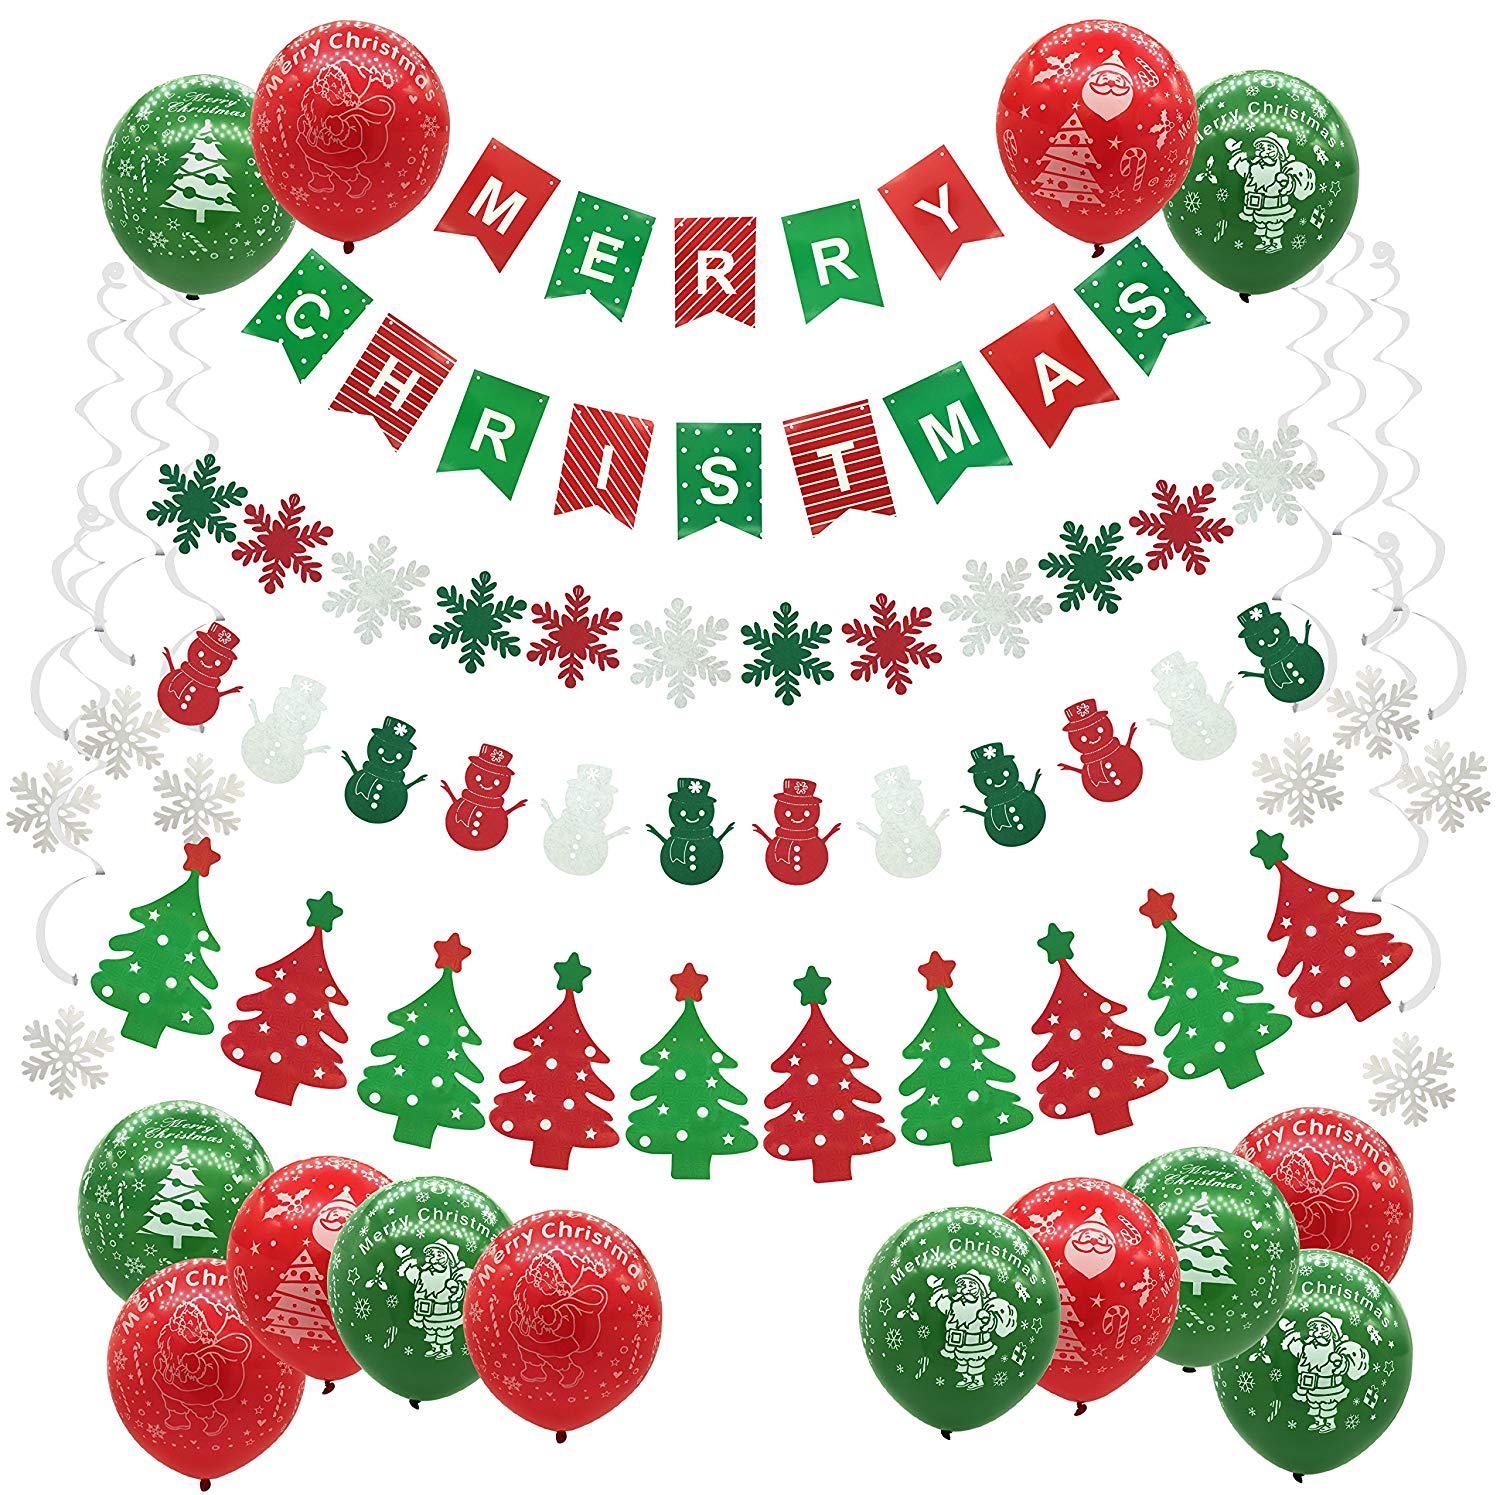 Cocodeko Merry Christmas Decoration, Christmas Garlands Banner with Trees Snowflake Snowman Banner and Snowflake Hanging Swirls Christmas Balloons for Xmas Ornaments Party Decoration